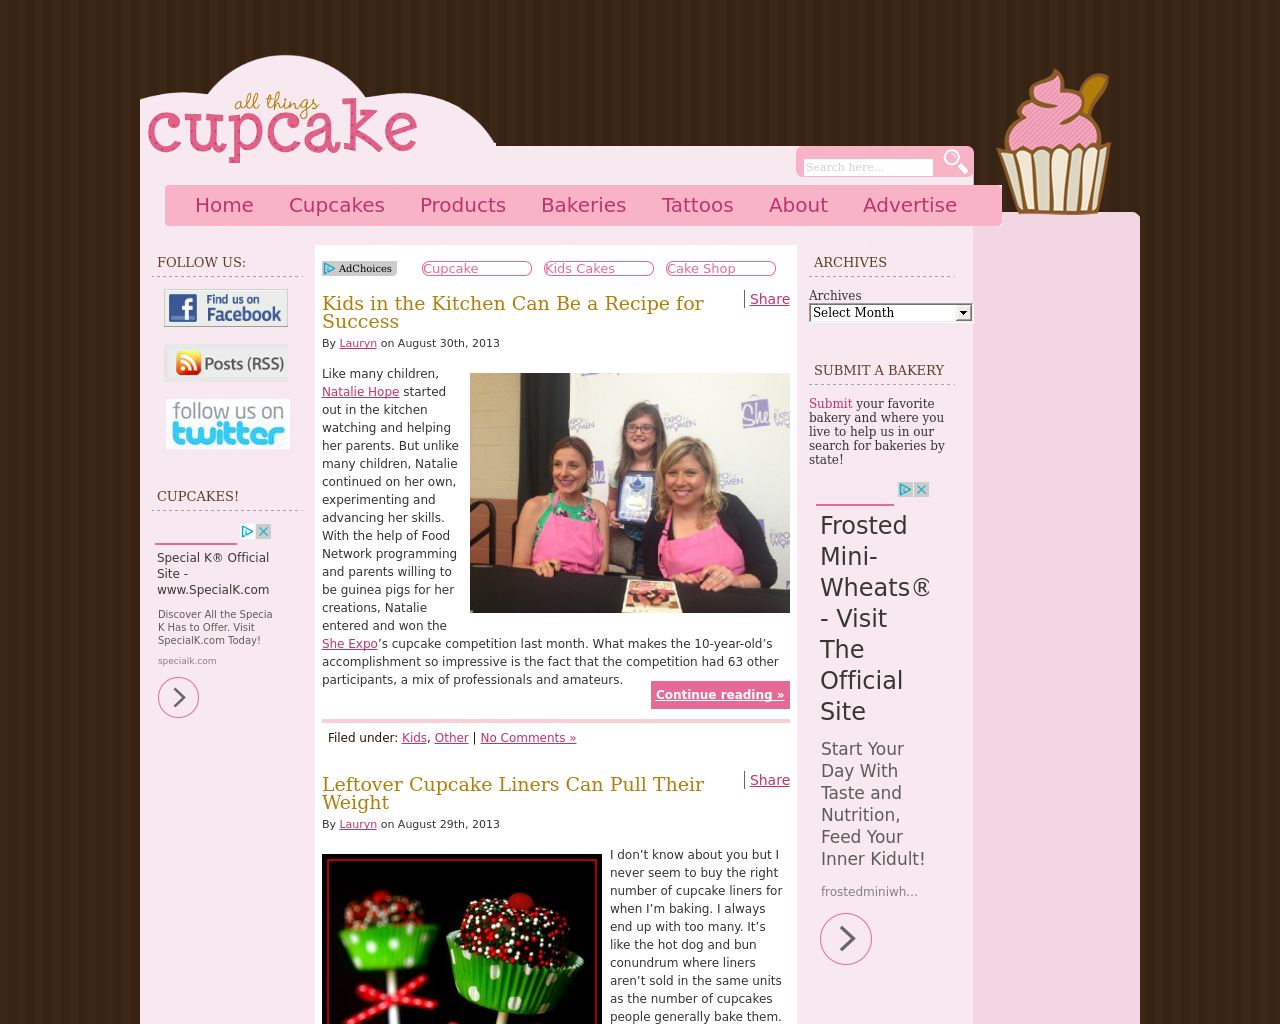 All-Things-Cupcake.com-Advertising-Reviews-Pricing